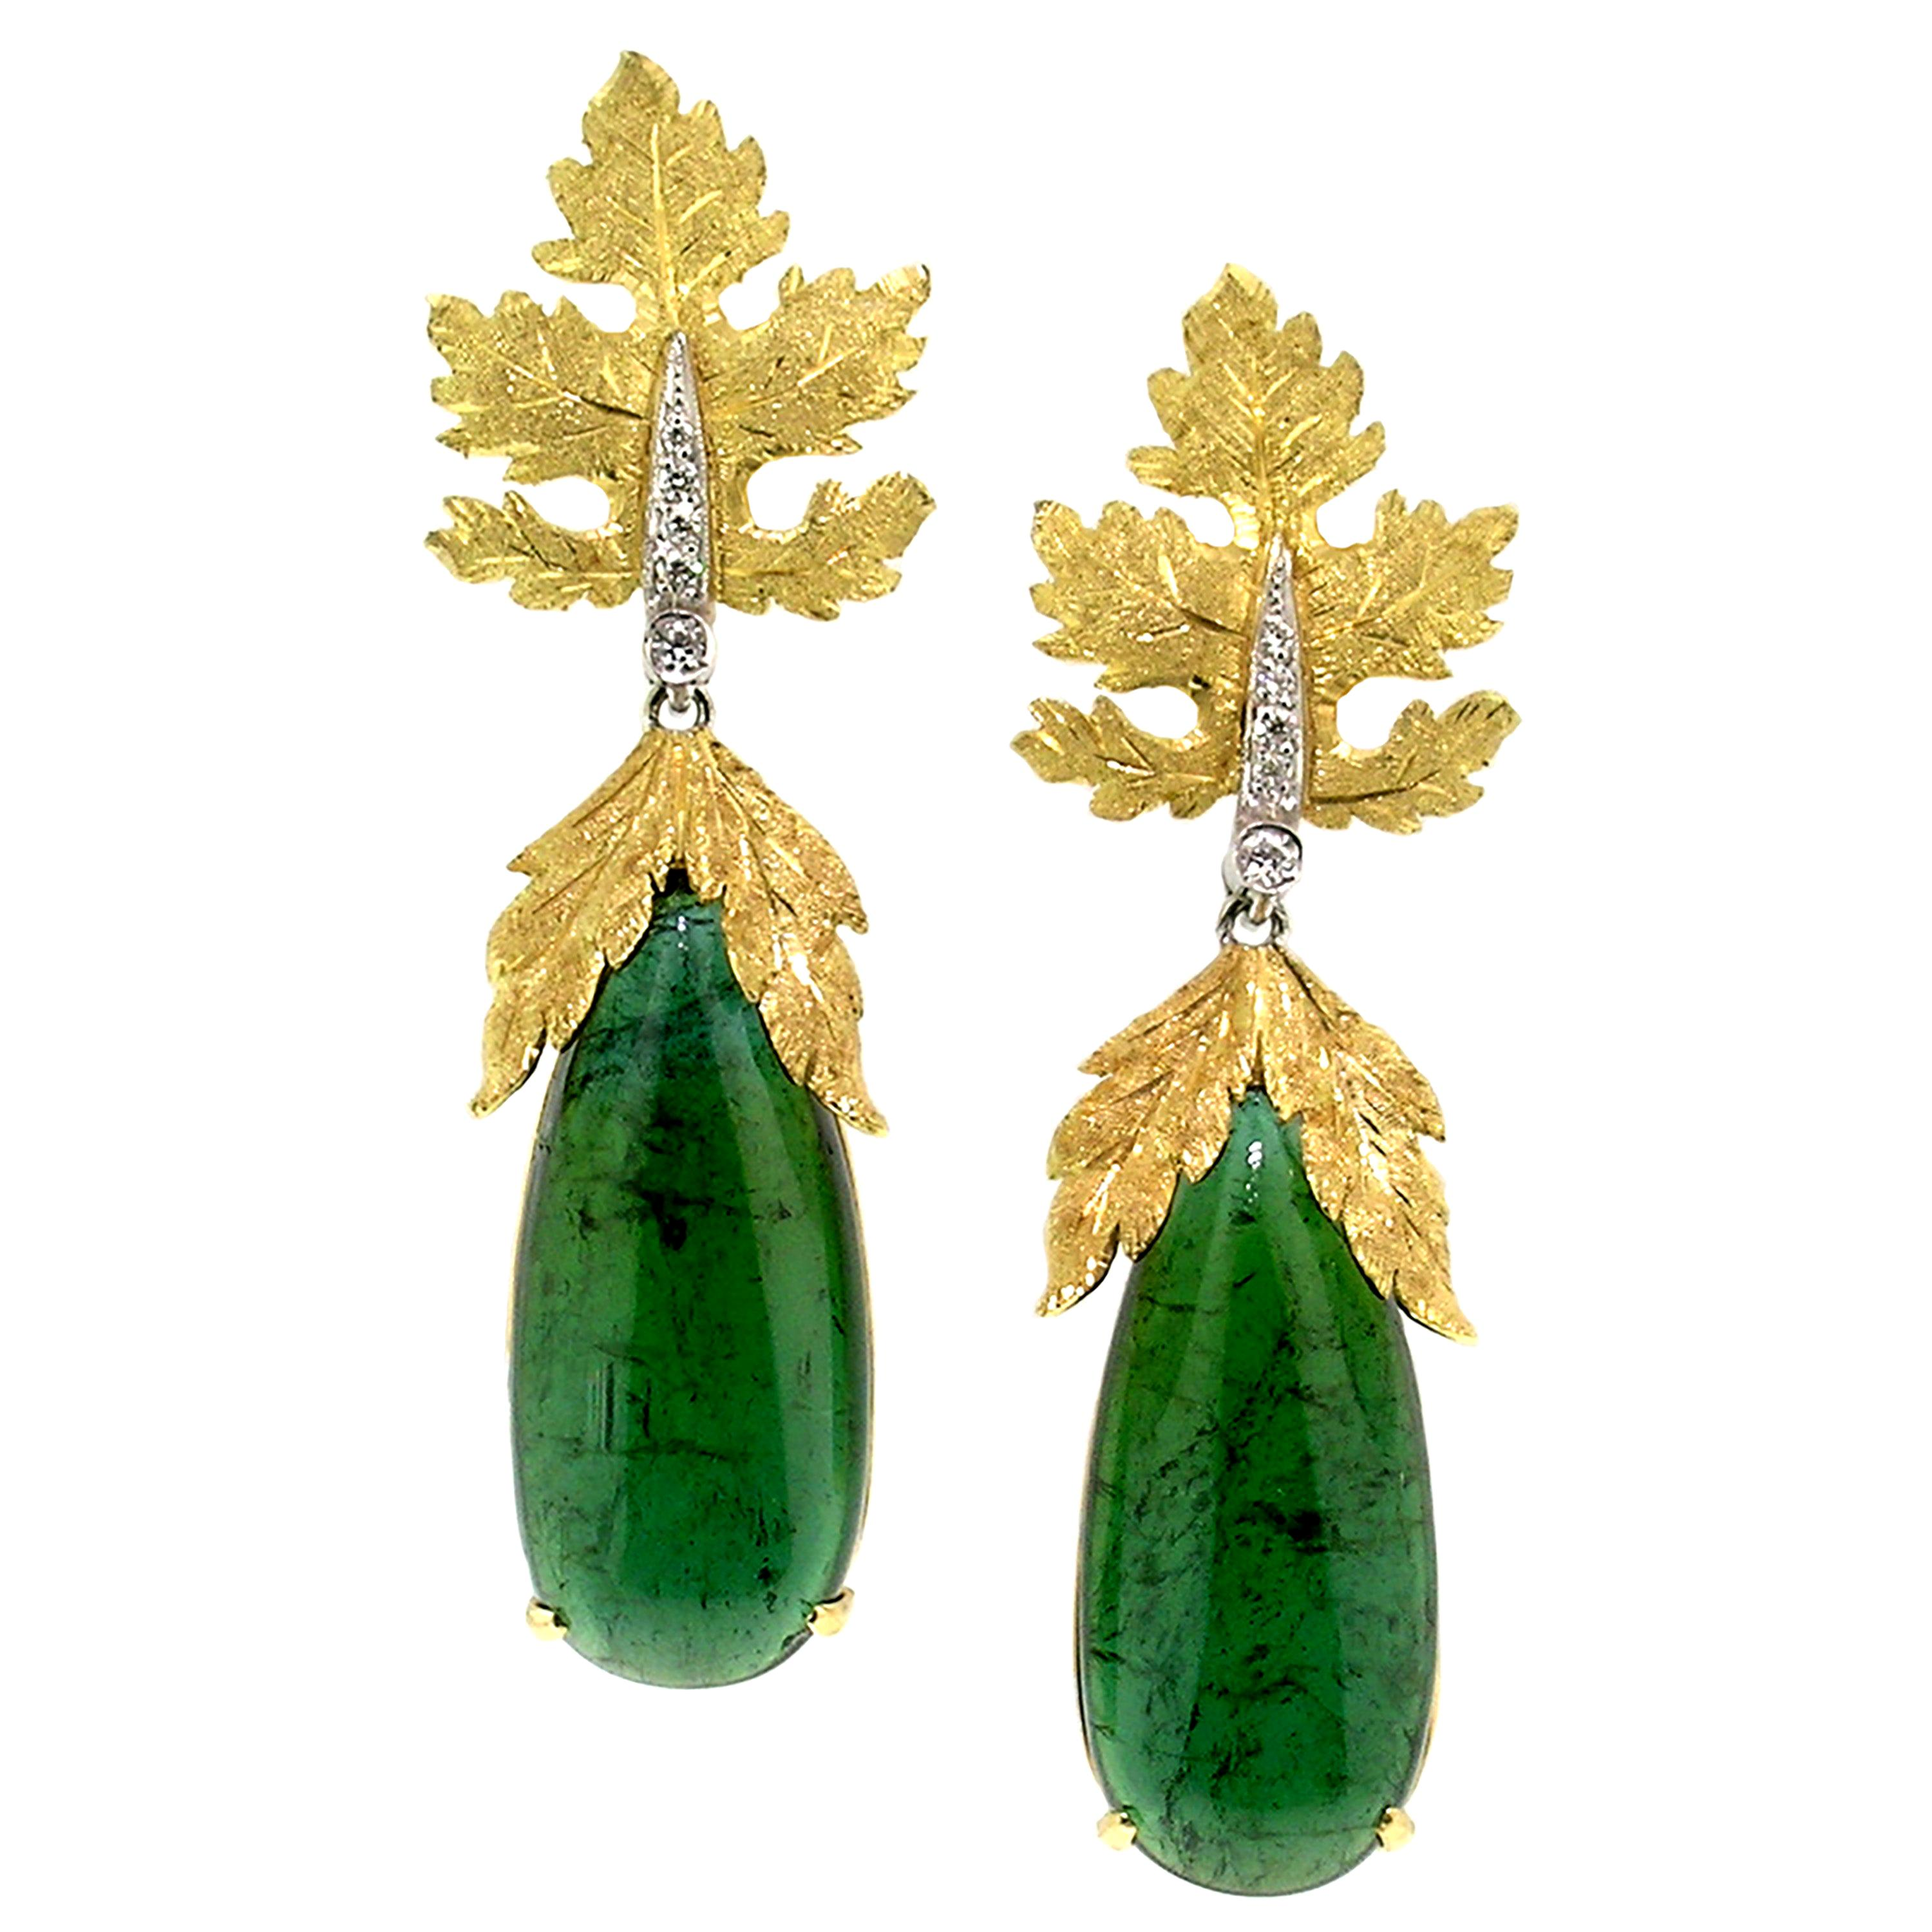 35.49ct Green Tourmaline 18kt Earrings, Made in Italy by Cynthia Scott